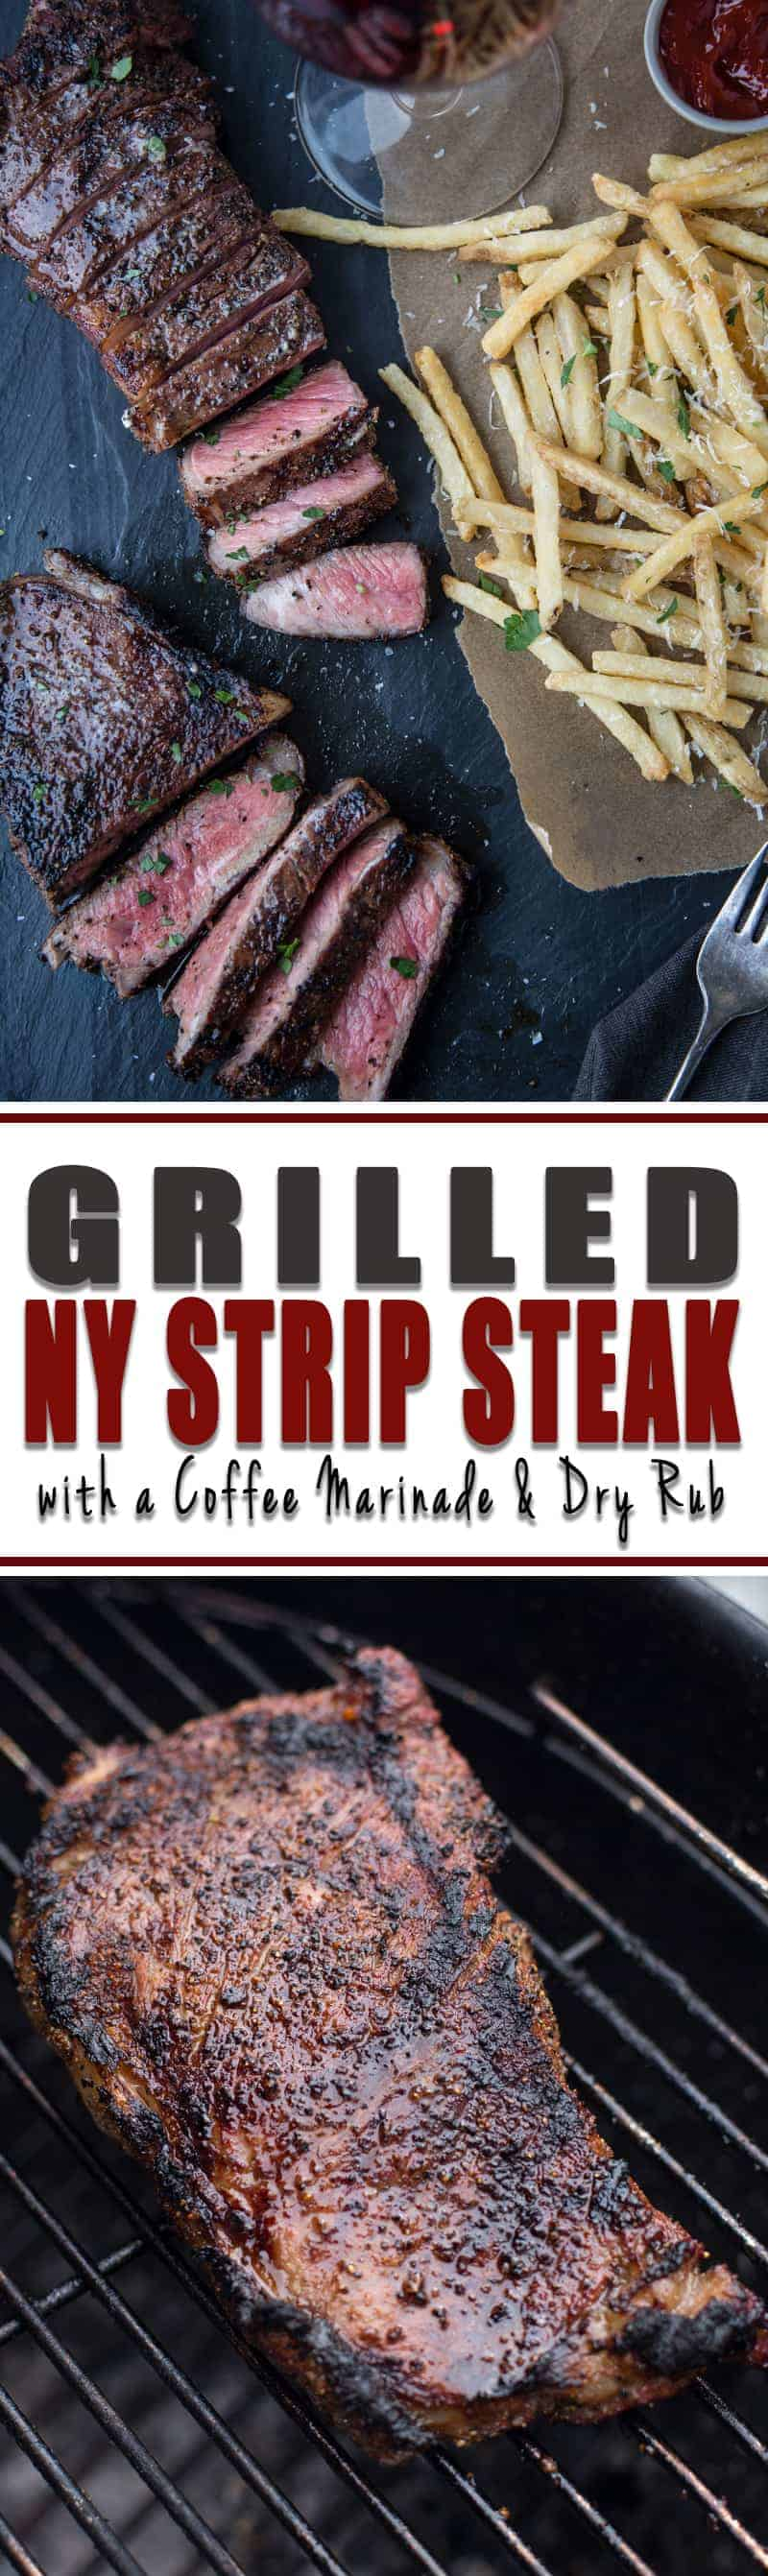 Long Pinterest Image for Coffee Marinated New York Strip Steak